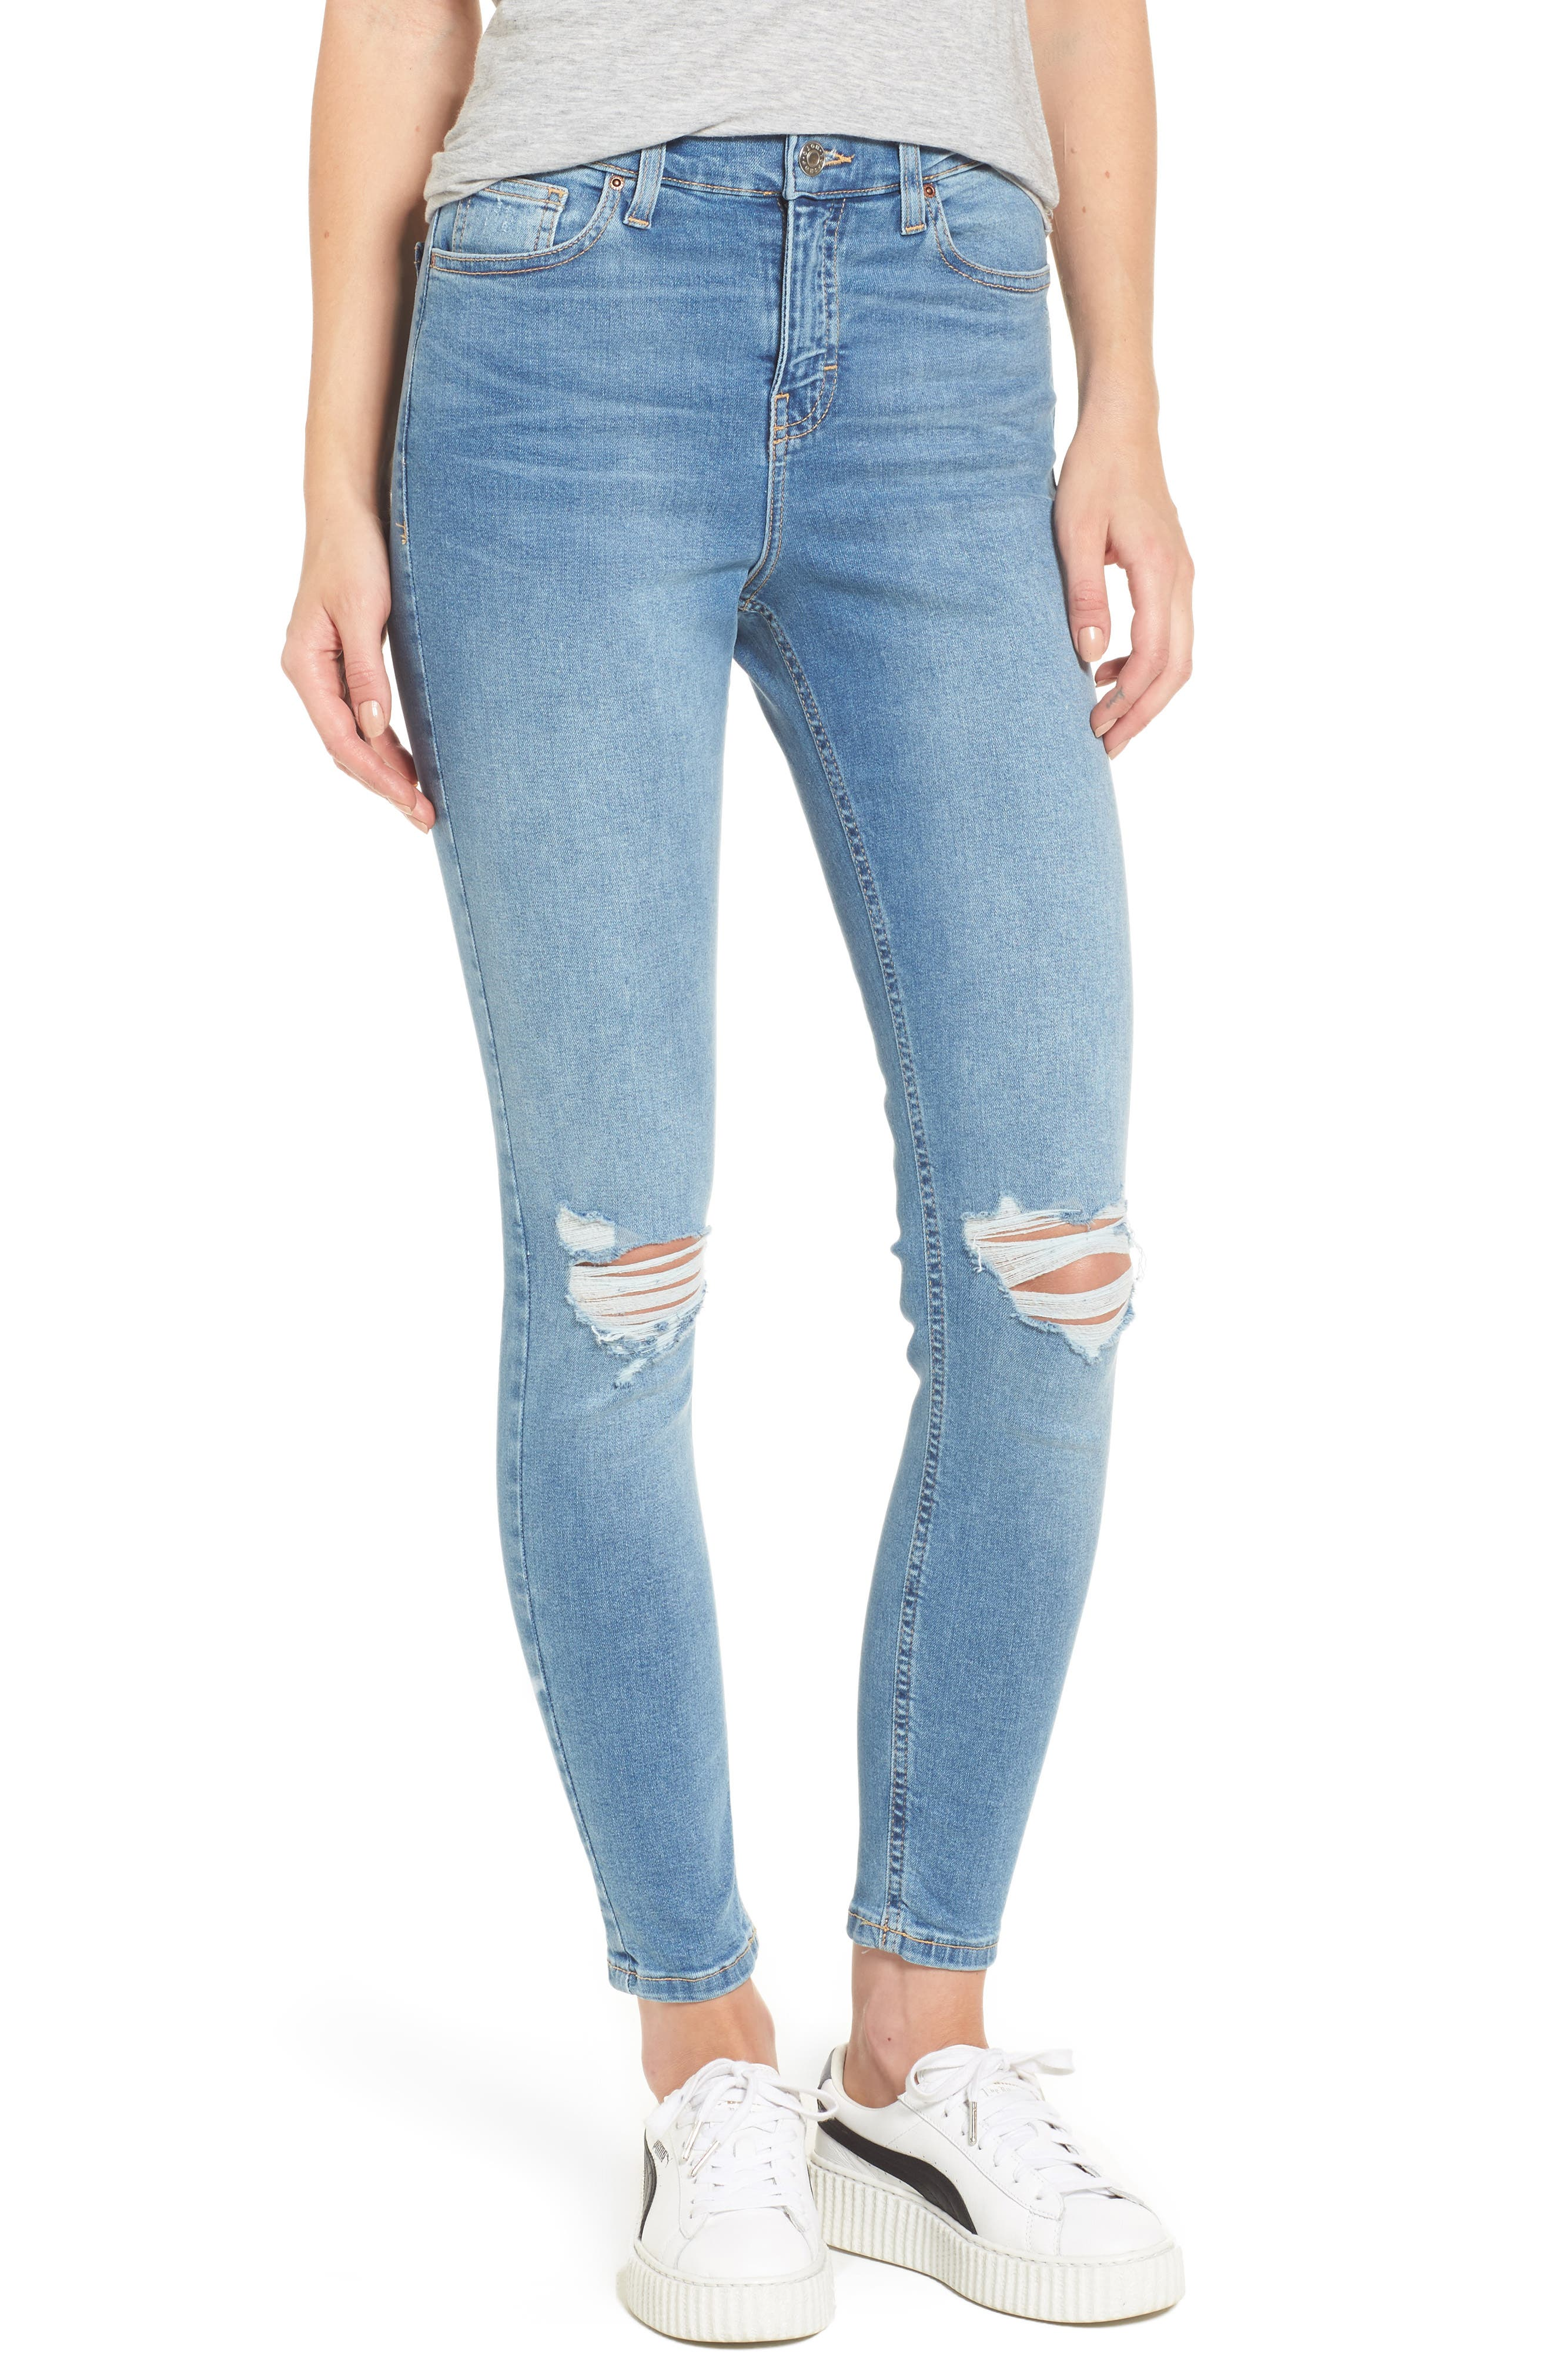 Moto Jamie Ripped High Waist Ankle Skinny Jeans,                             Main thumbnail 1, color,                             400